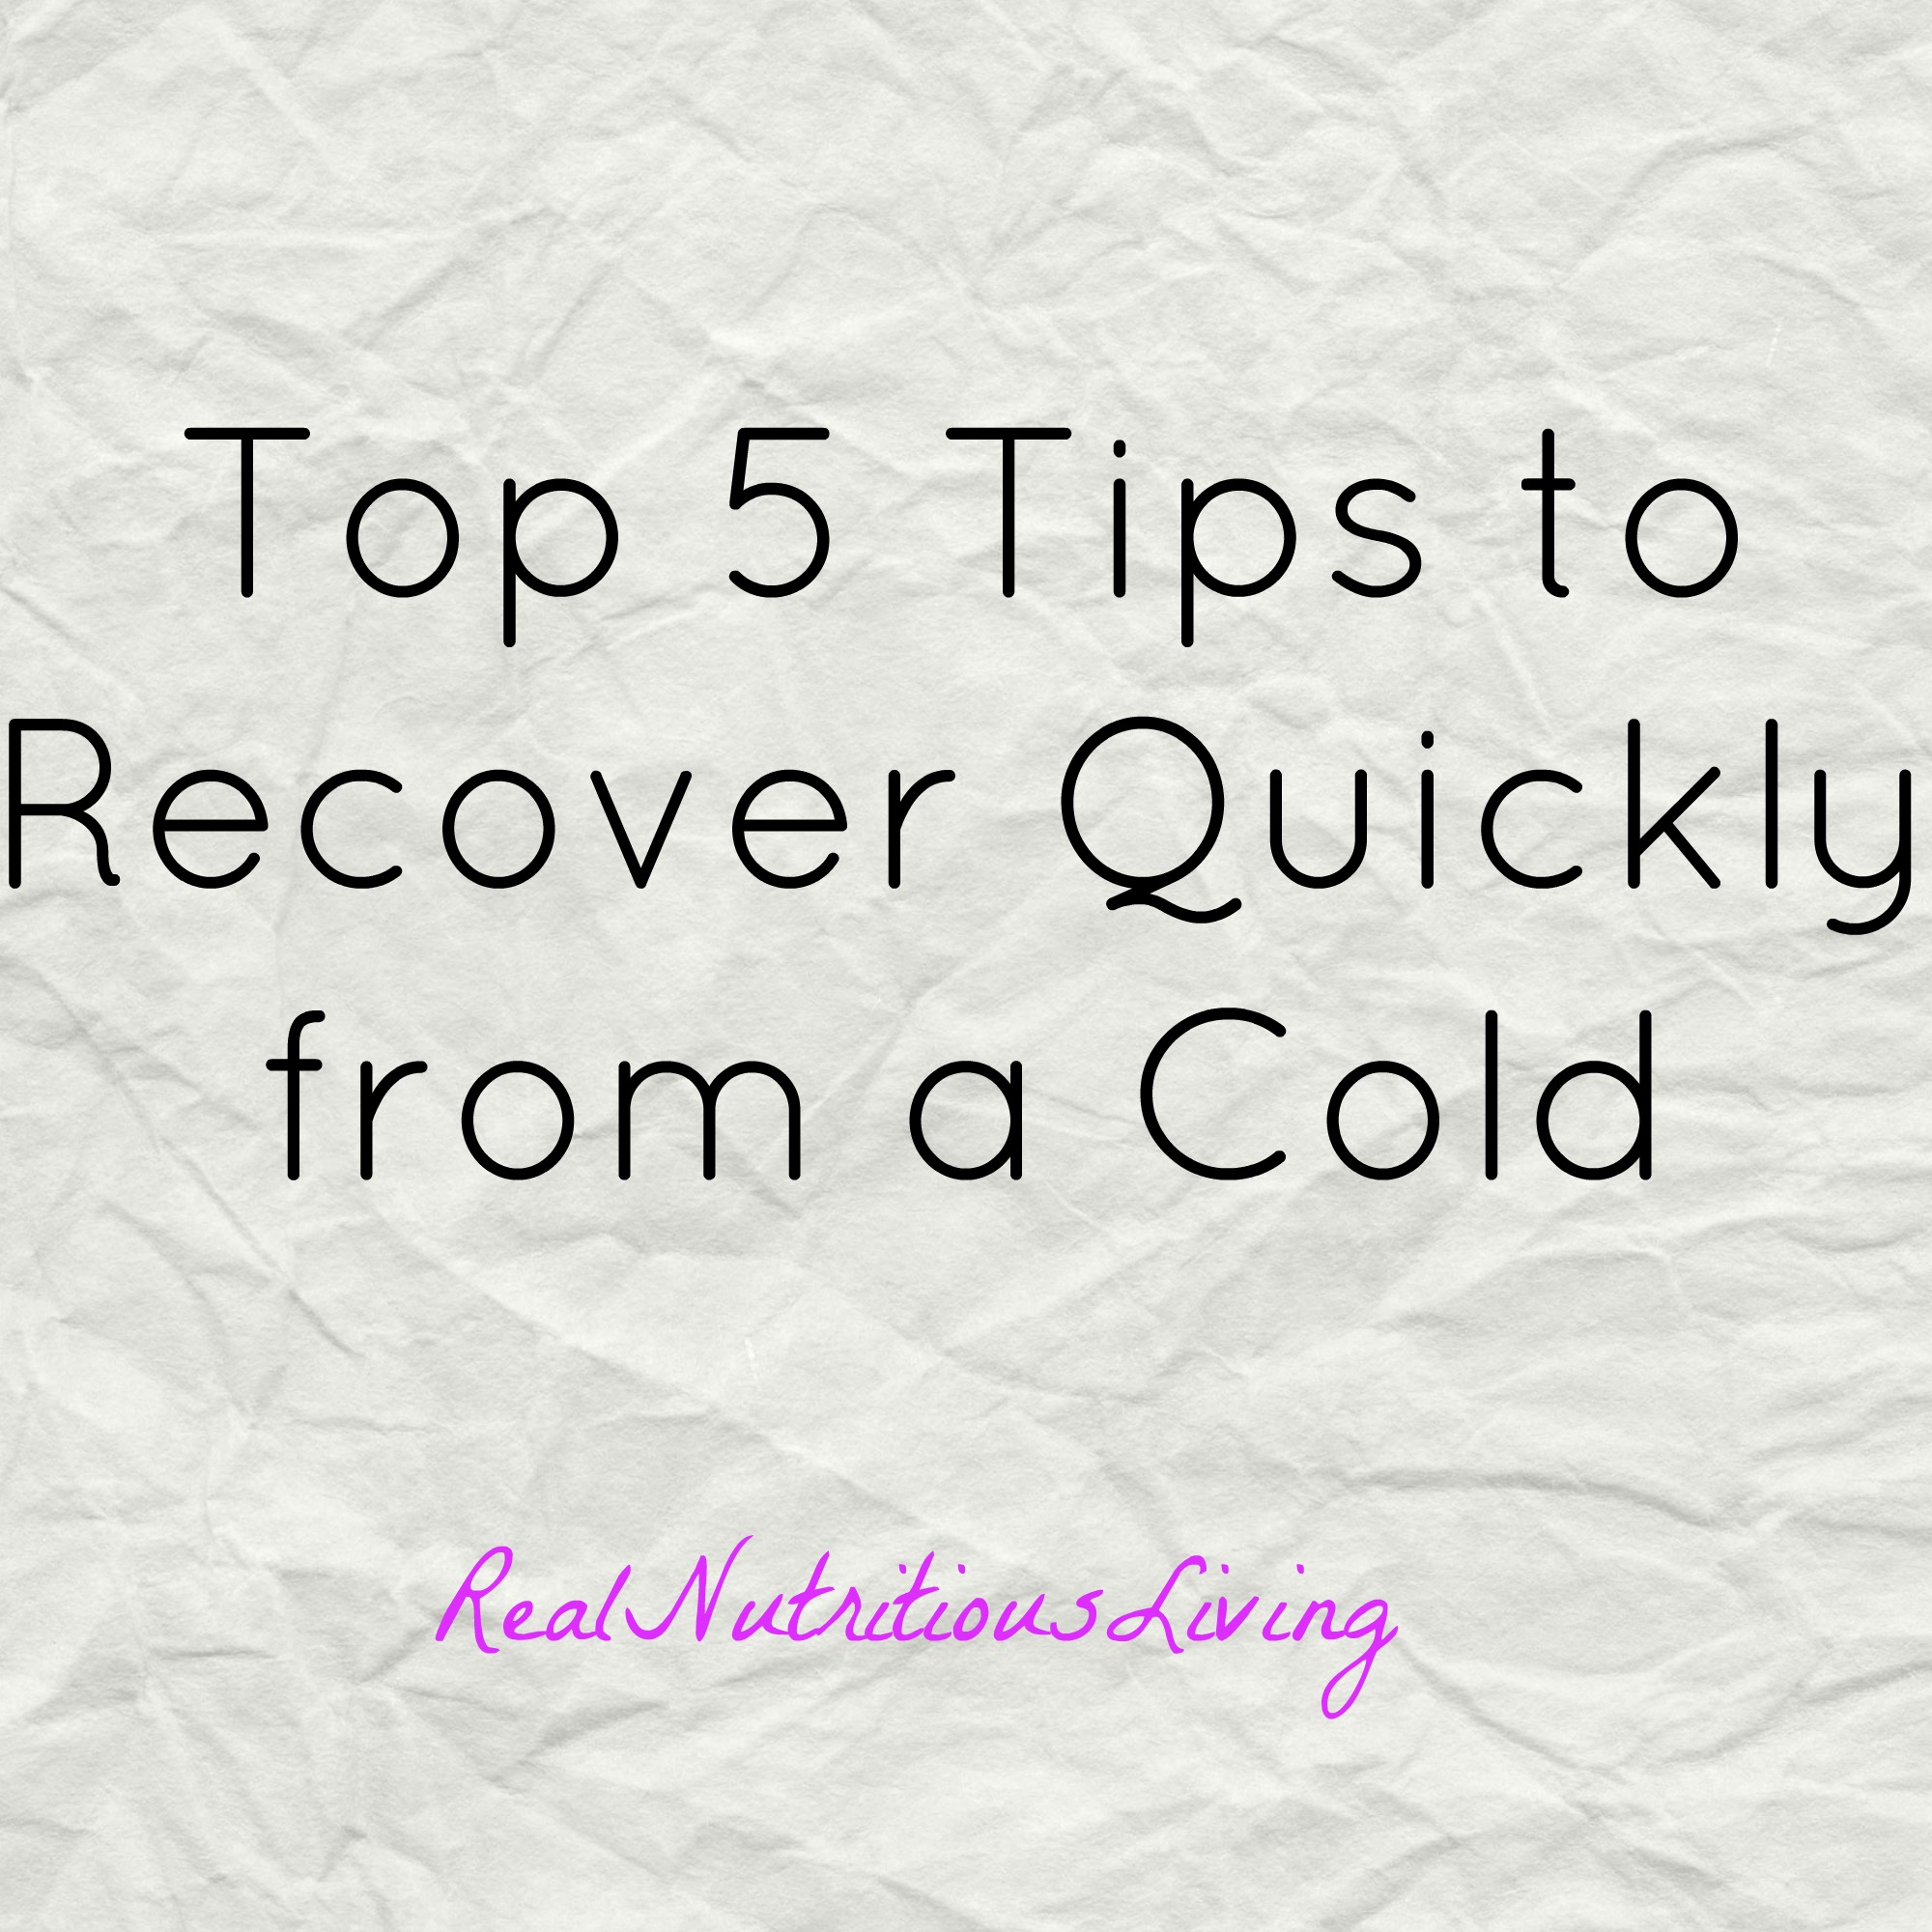 Top 5 Tips to Recover from a Cold